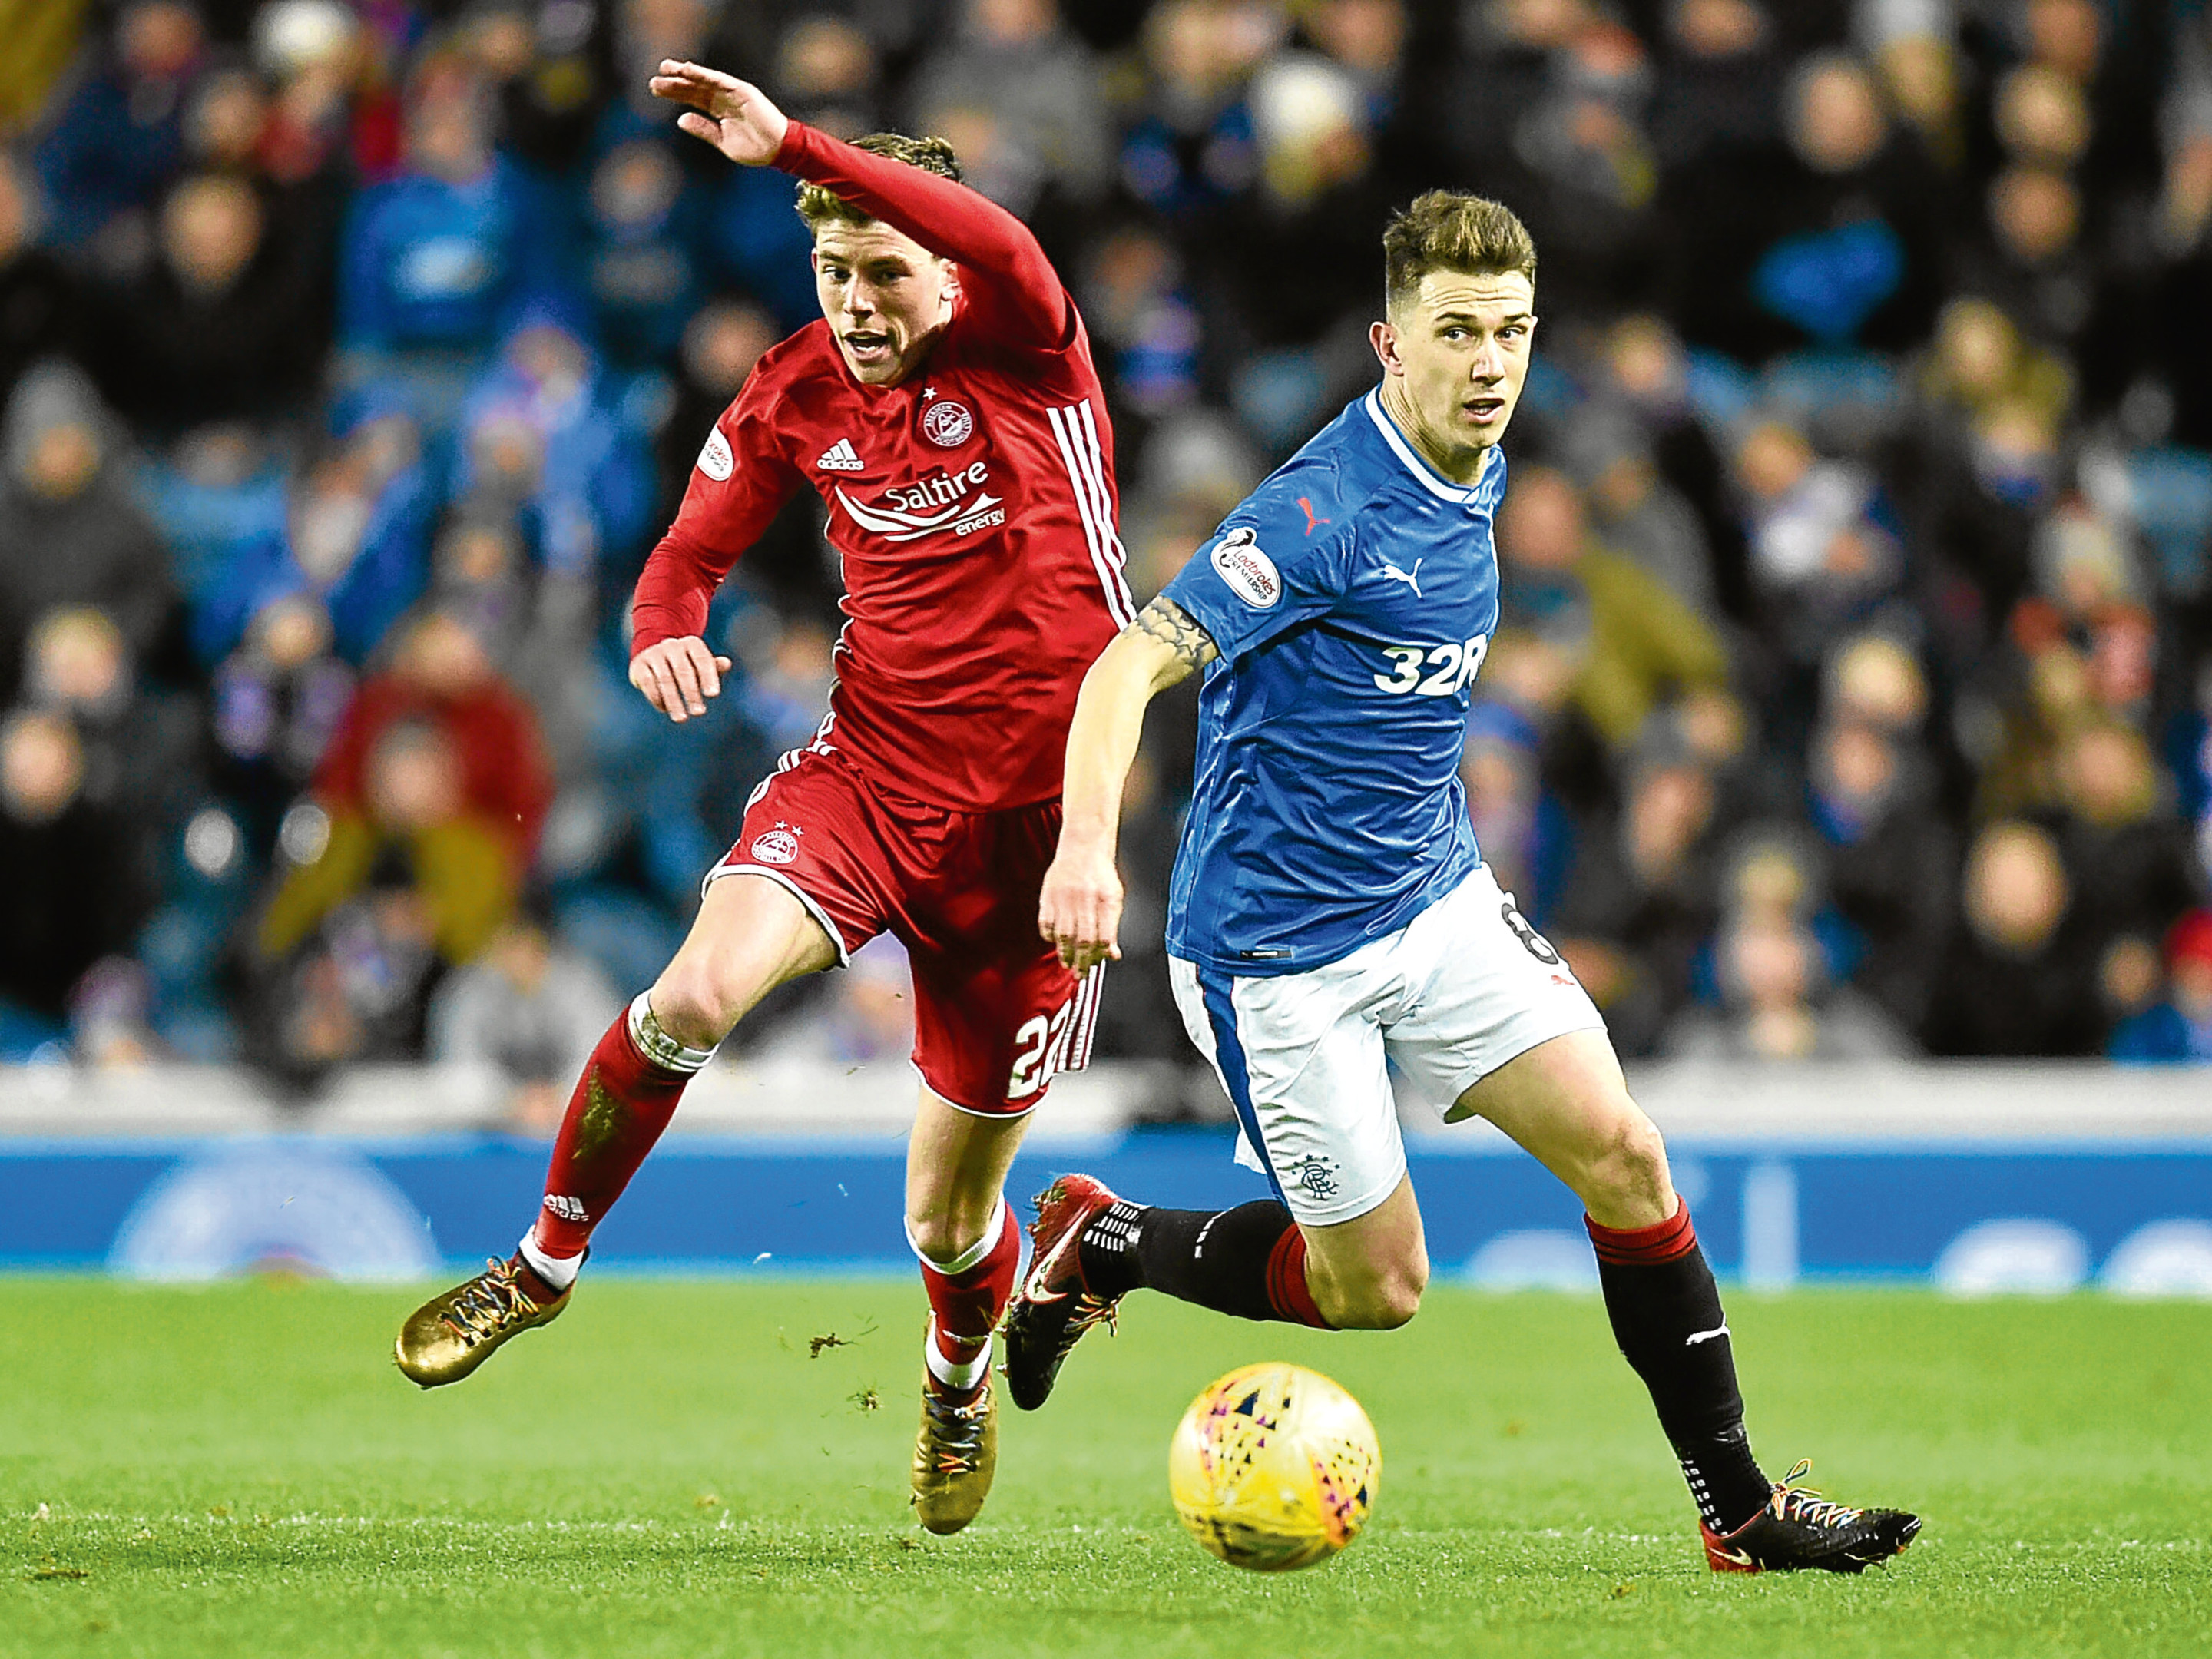 Aberdeen's Ryan Christie and Rangers' Ryan Jack in action.